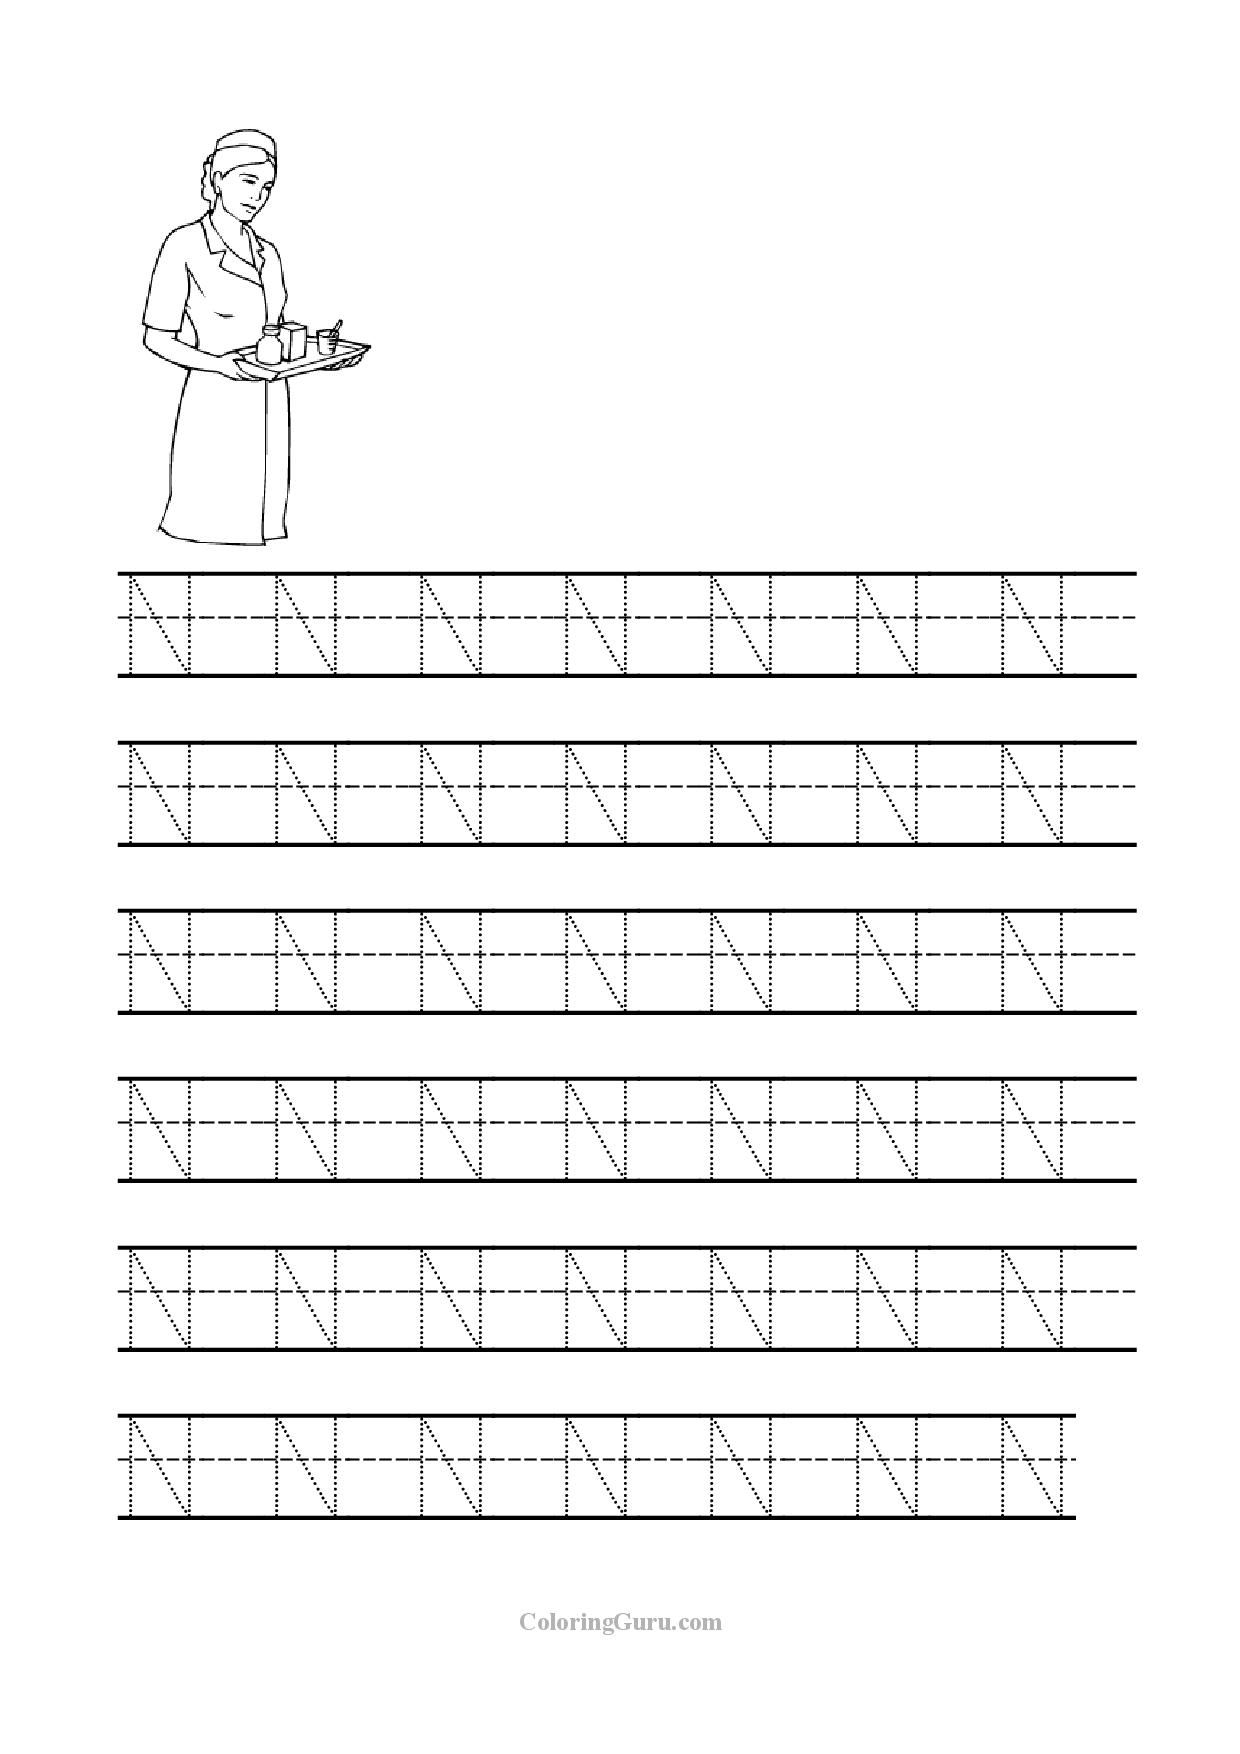 free printable tracing letter n worksheets for preschool - Printable Printing Worksheets